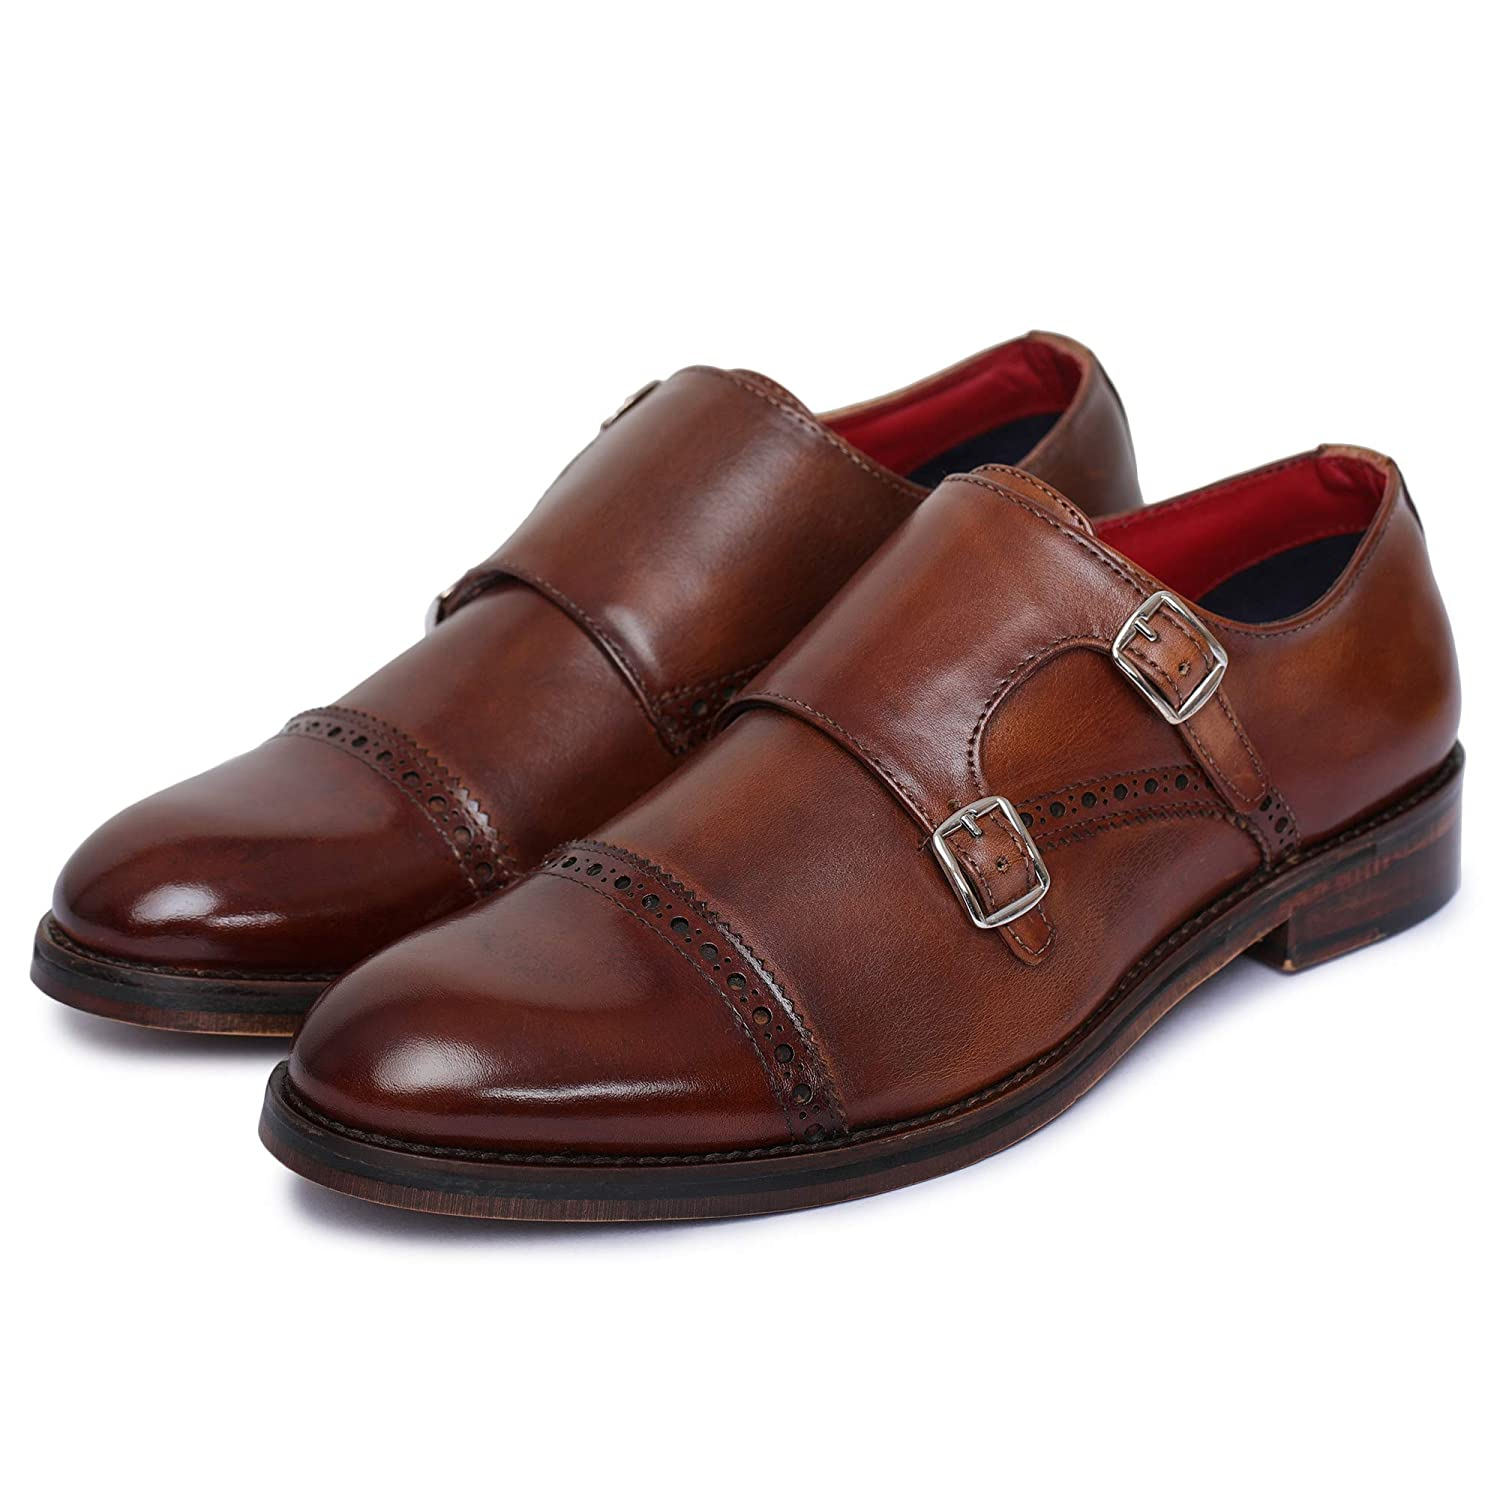 Brown Lethato Handcrafted Men's Captoe Double Monk Strap Genuine Leather Modern Classic Dress shoes